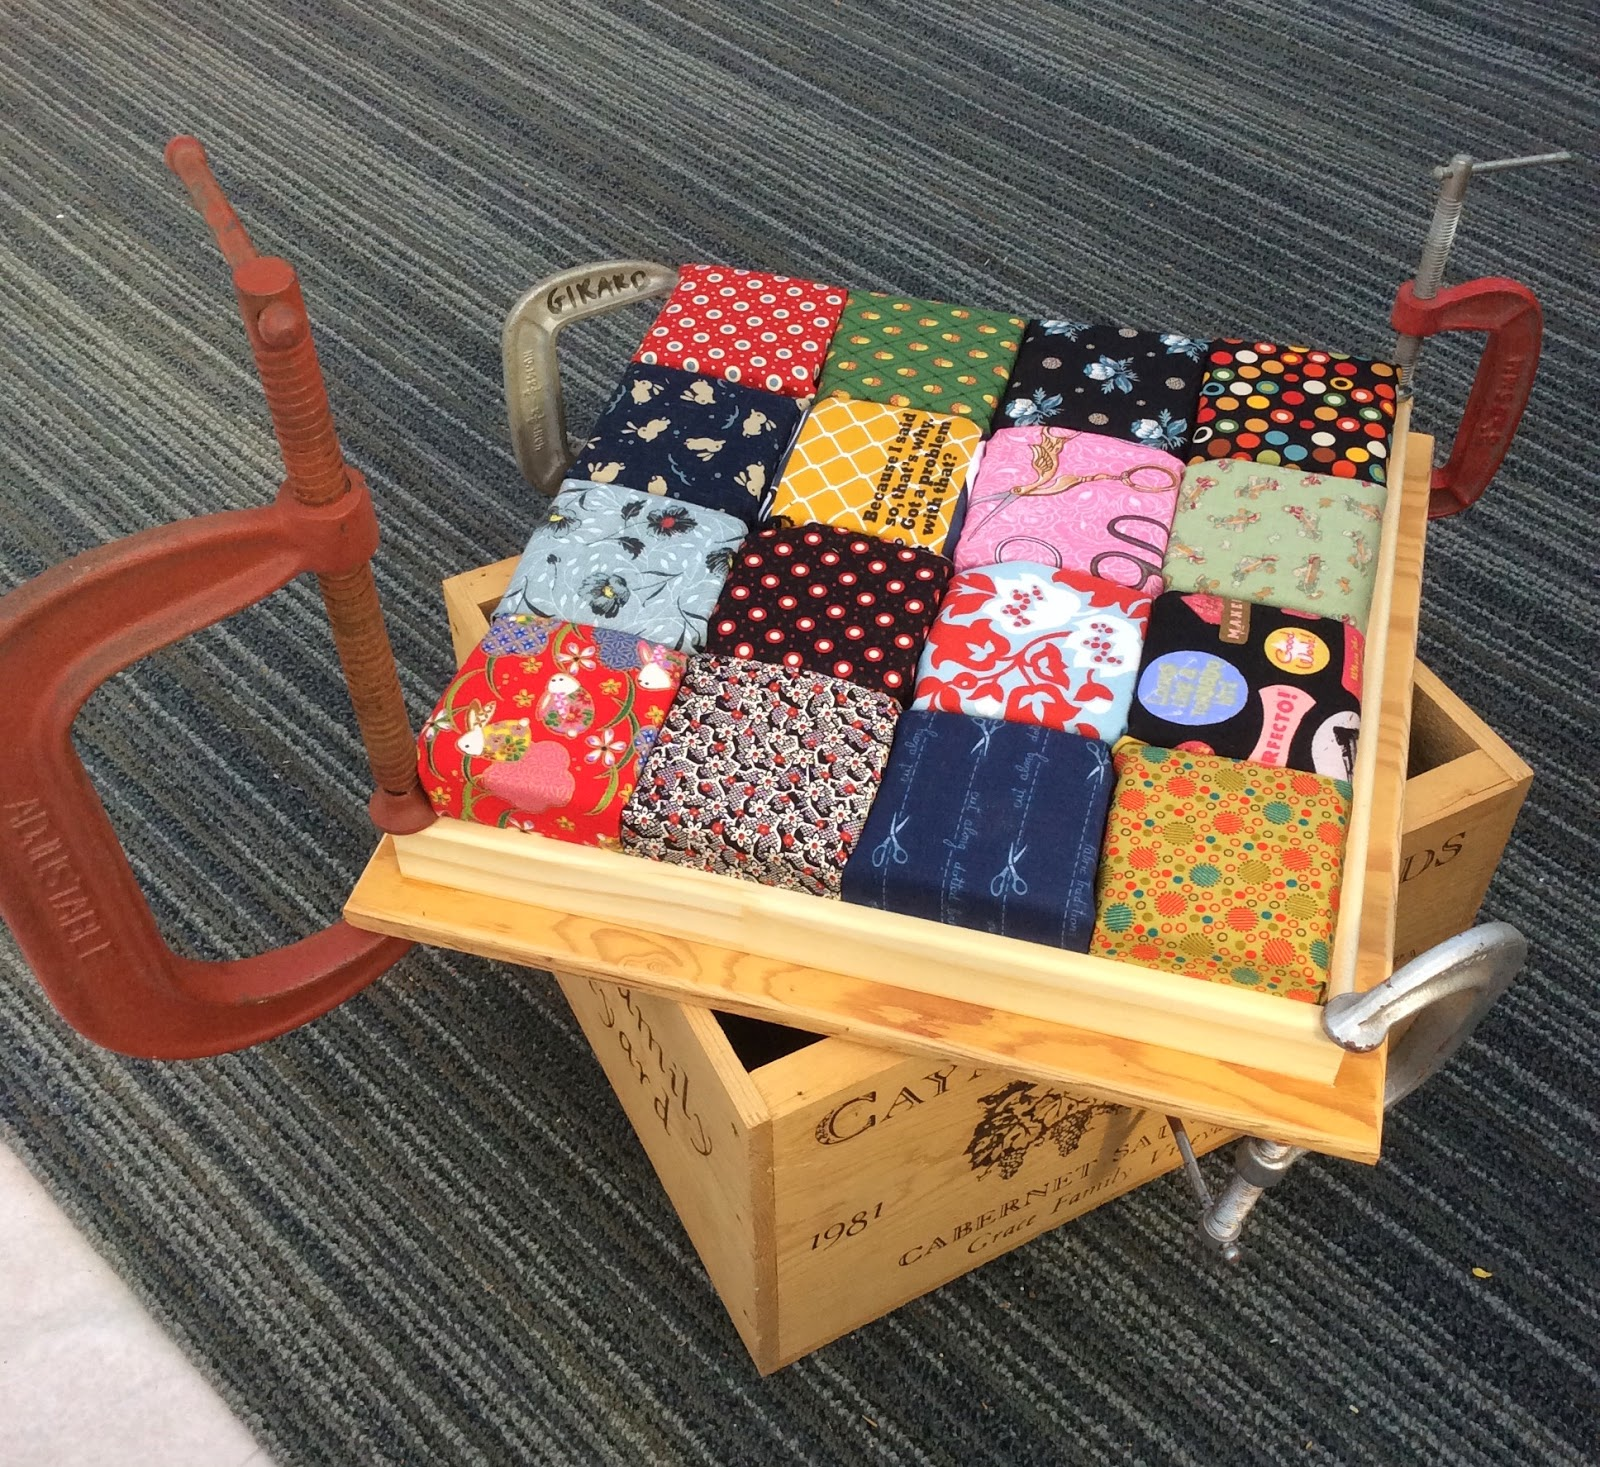 recycled wine crate foot stool, foamology 12 block, quilt fabric, buttons, stefanie girard